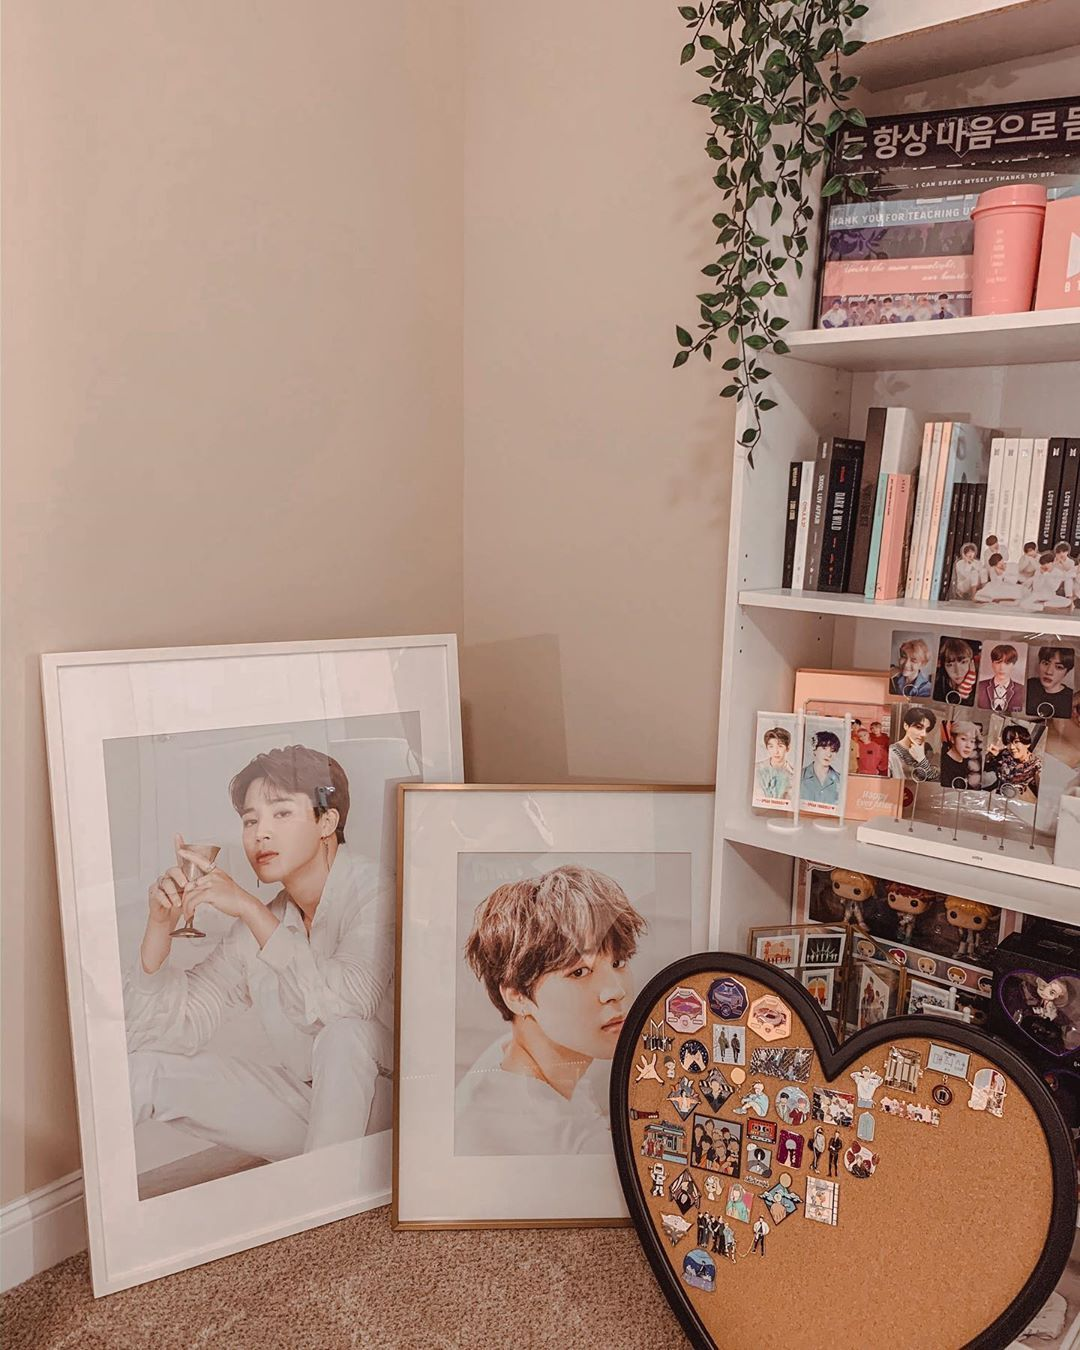 Bts Jimin On Instagram Iko Said No Posters On The The Wall Challenge Accepted Army Room Decor Army Room Room Inspo